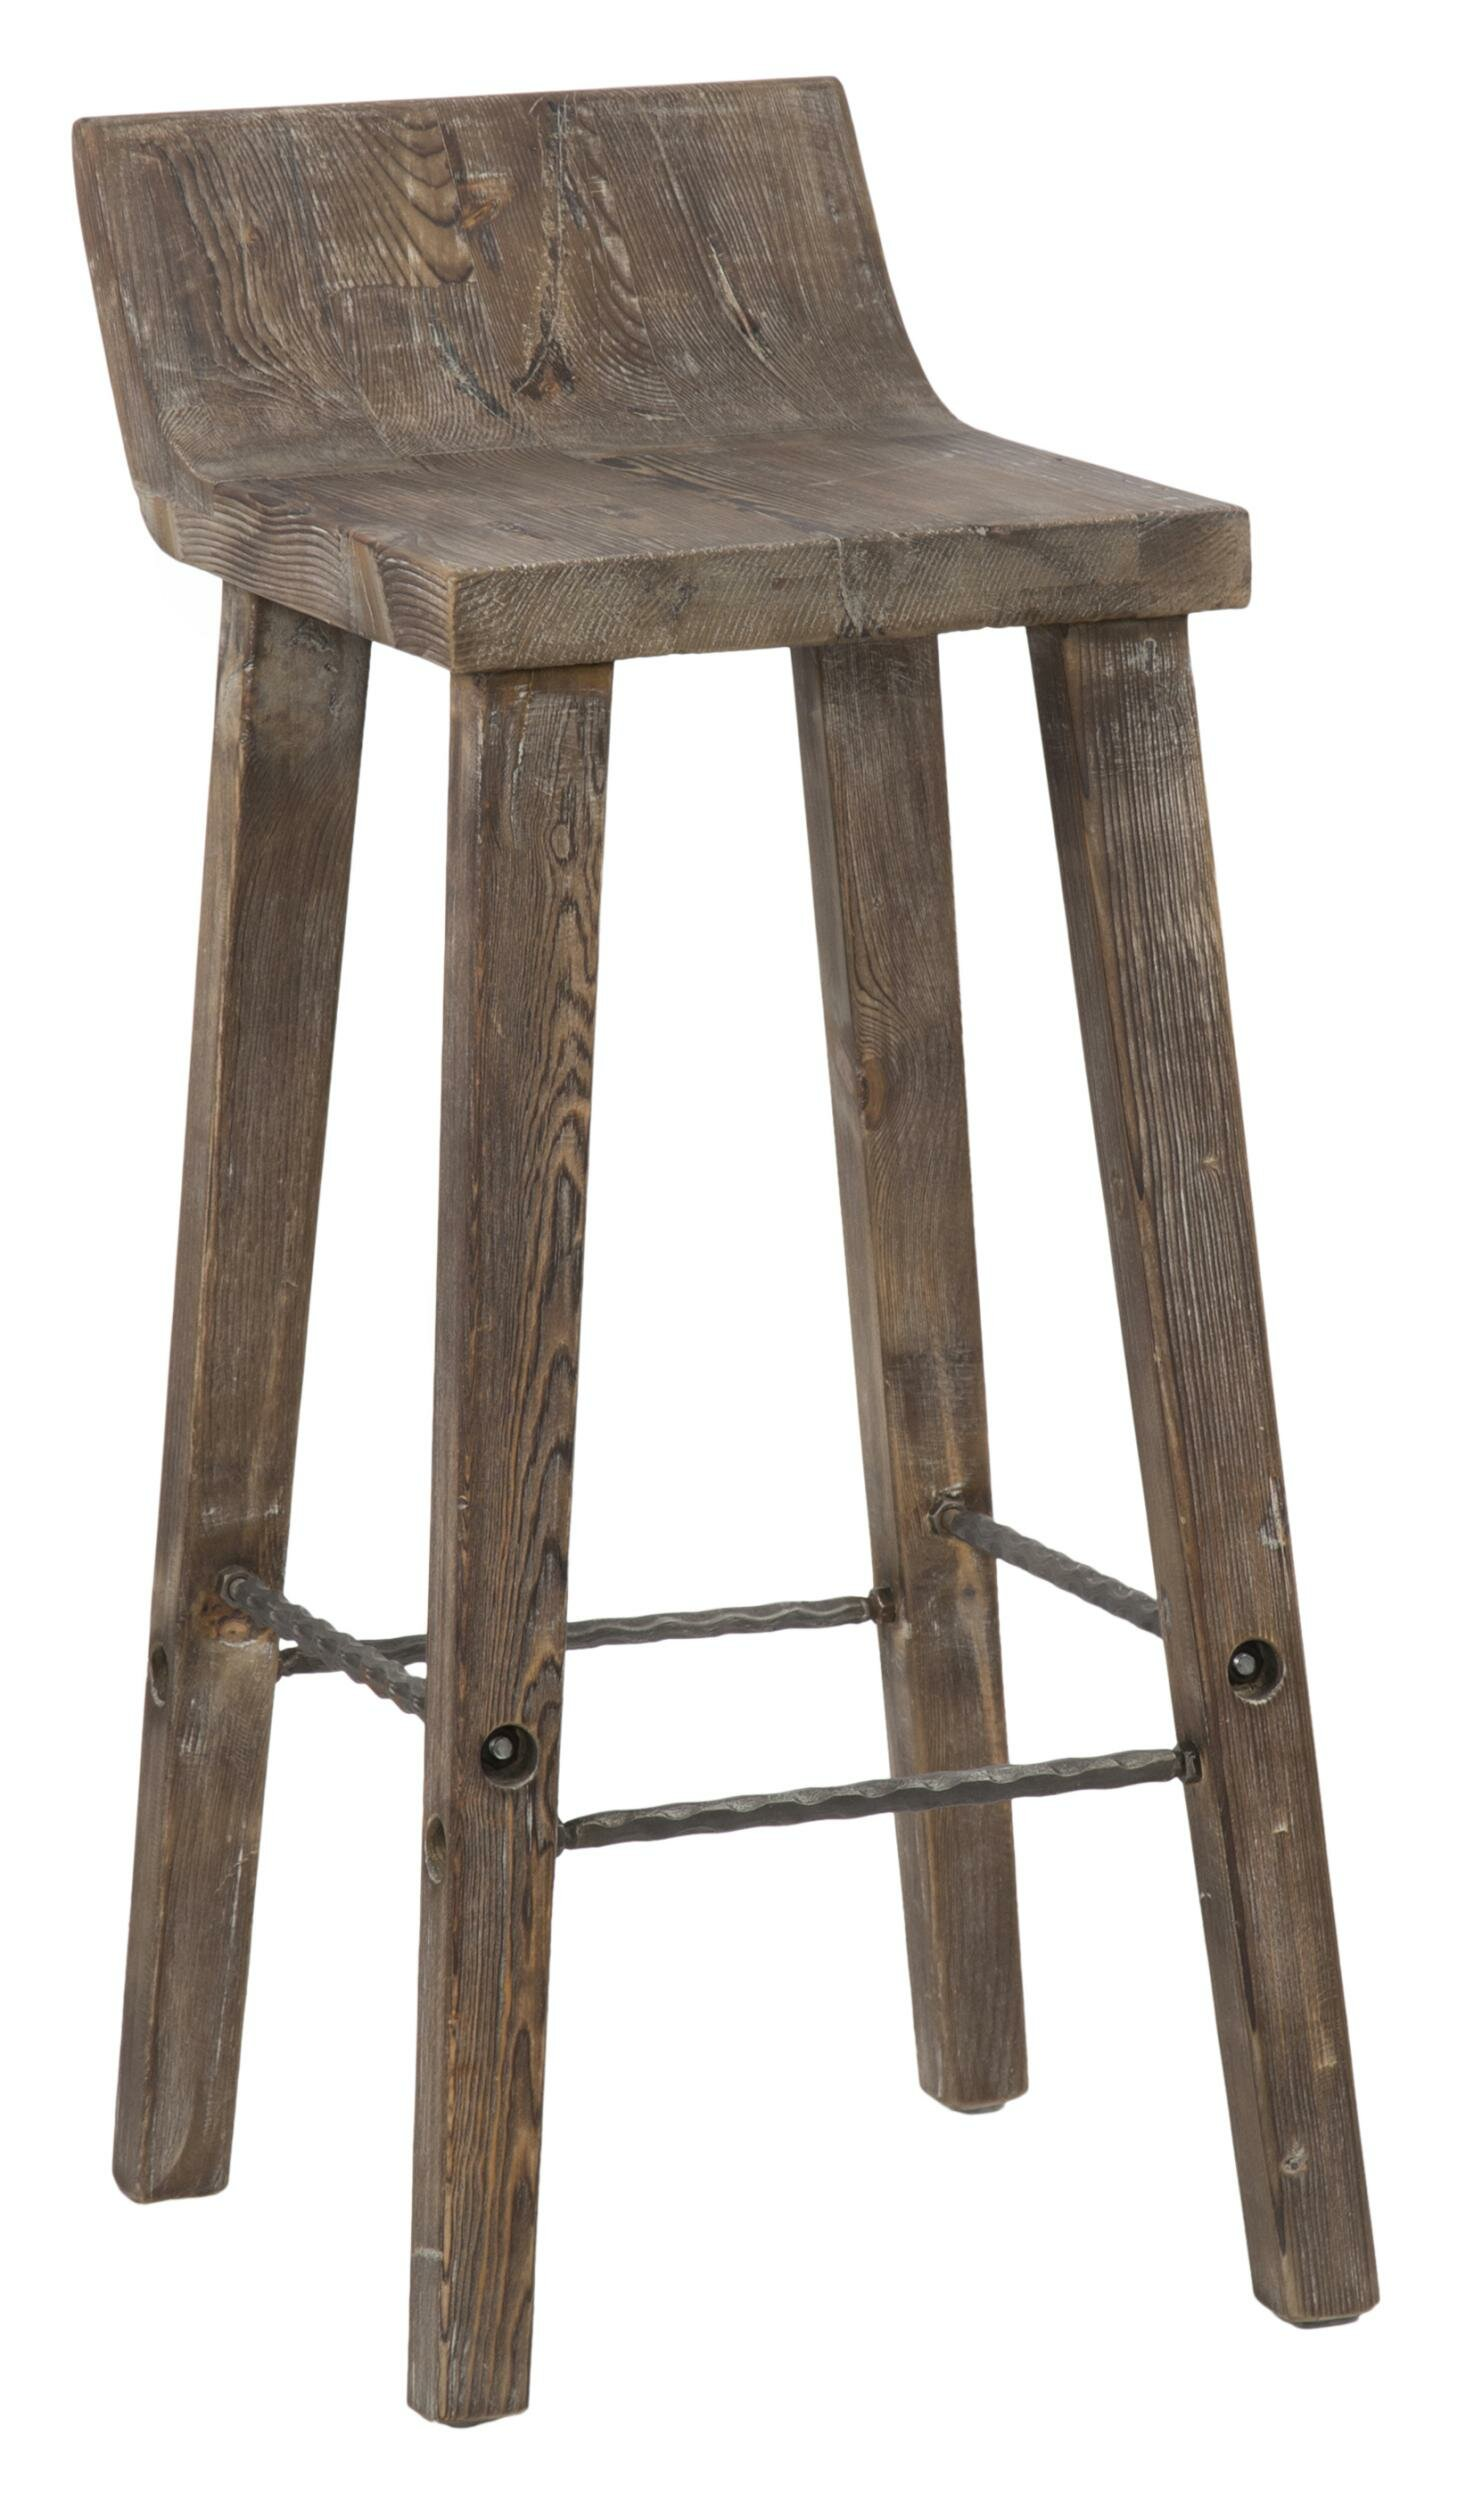 Sensational Alston Wooden Bar Stool Caraccident5 Cool Chair Designs And Ideas Caraccident5Info